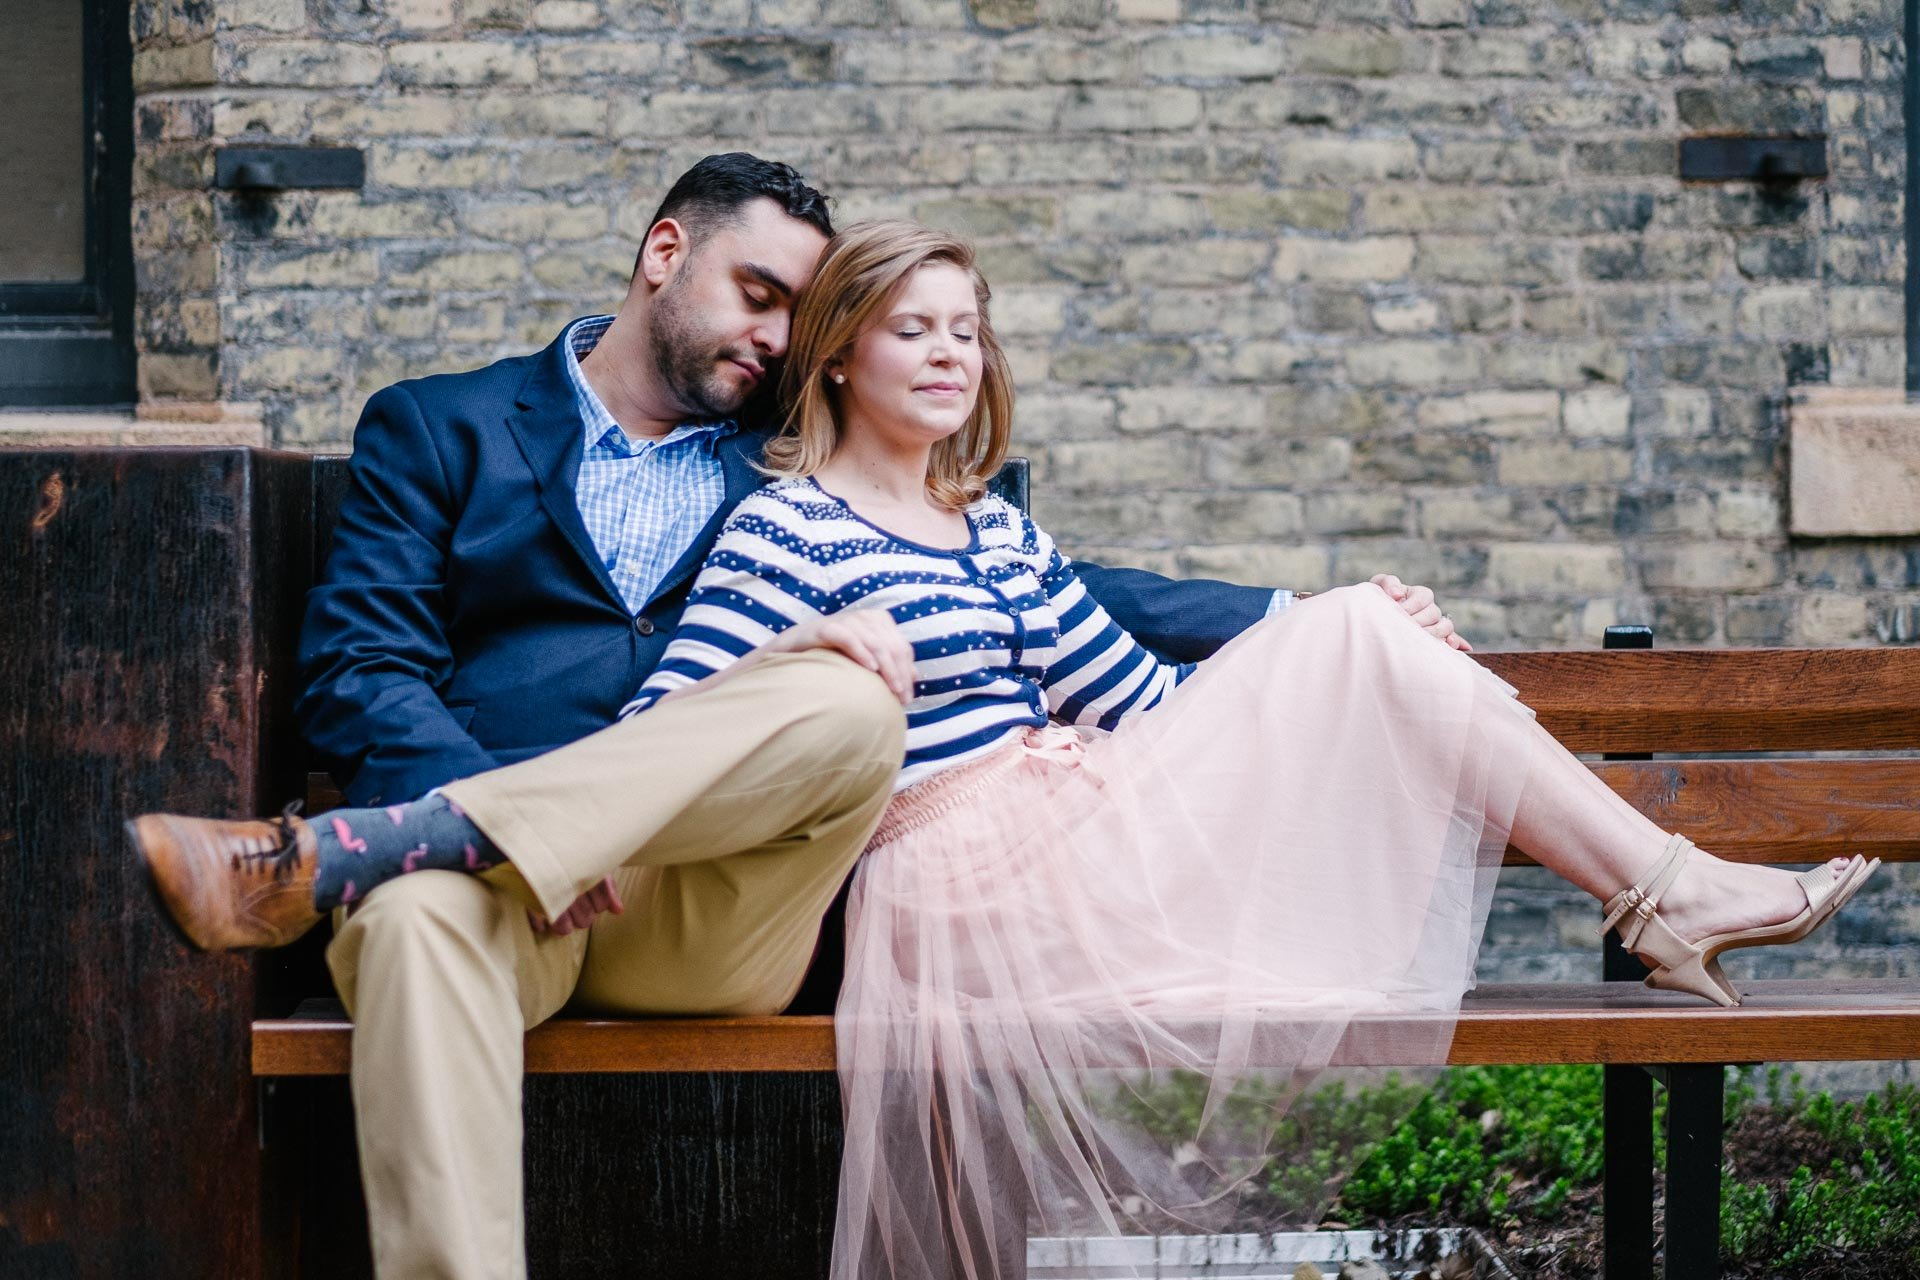 Engagement Photography Session in St. Paul Pioneer Endicott